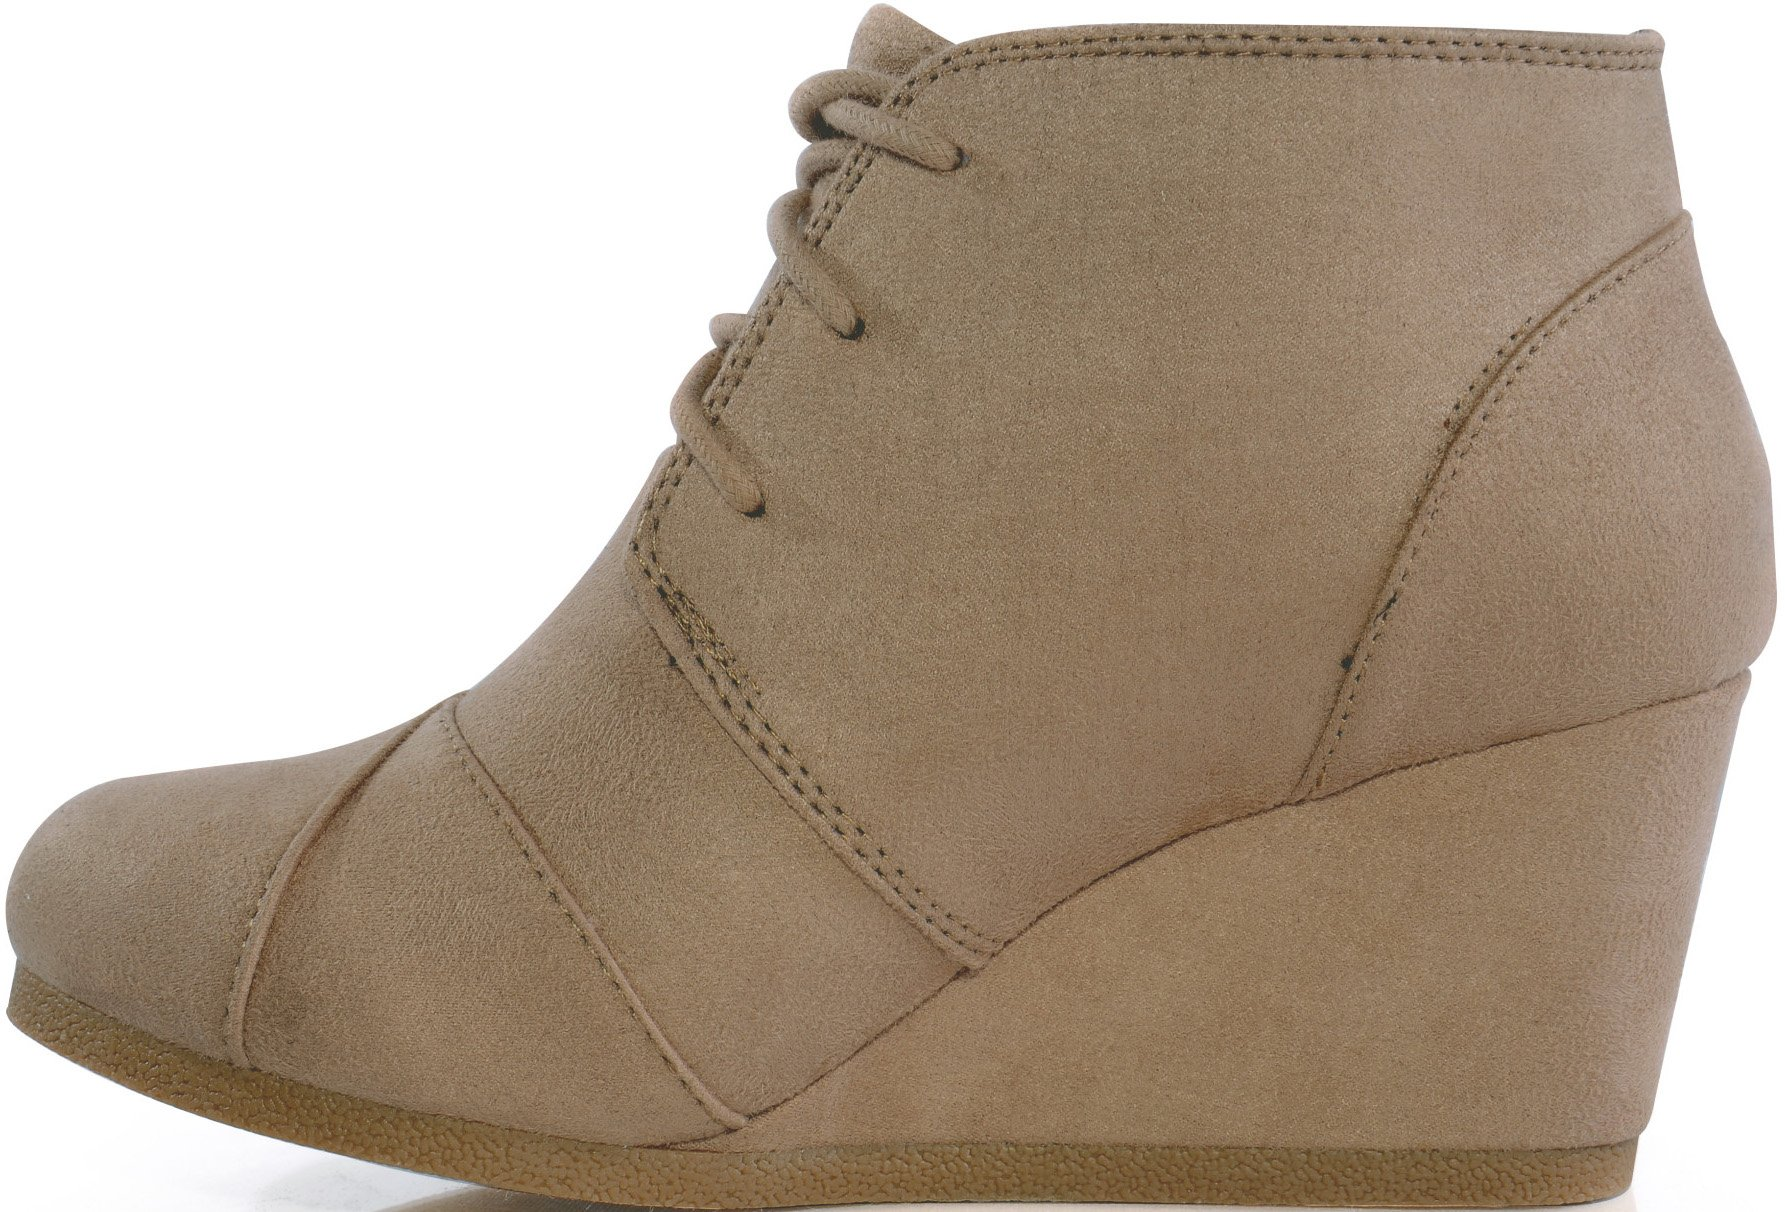 MARCOREPUBLIC Galaxy Womens Wedge Boots - (Taupe) - 10 by MARCOREPUBLIC (Image #4)